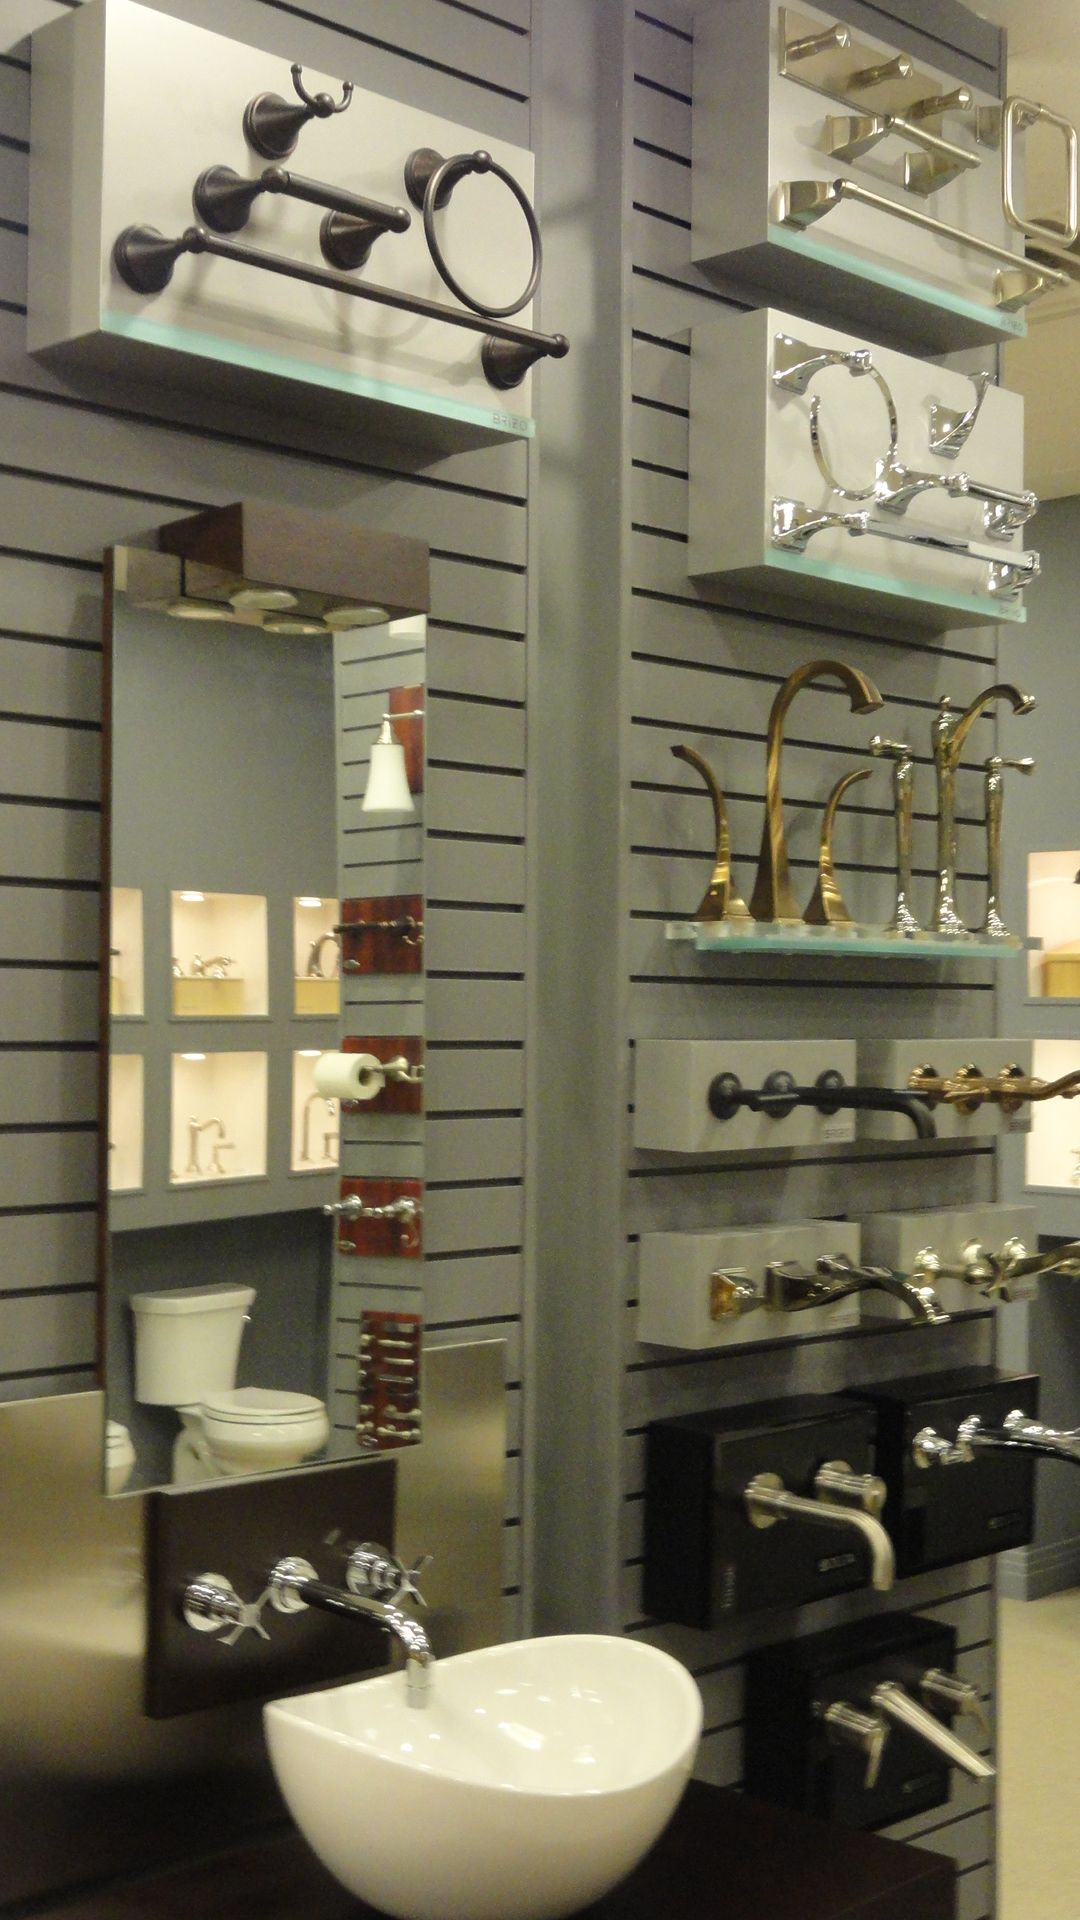 Brizo Faucets, Showers, Bathroom Faucets and Accessories in our ...